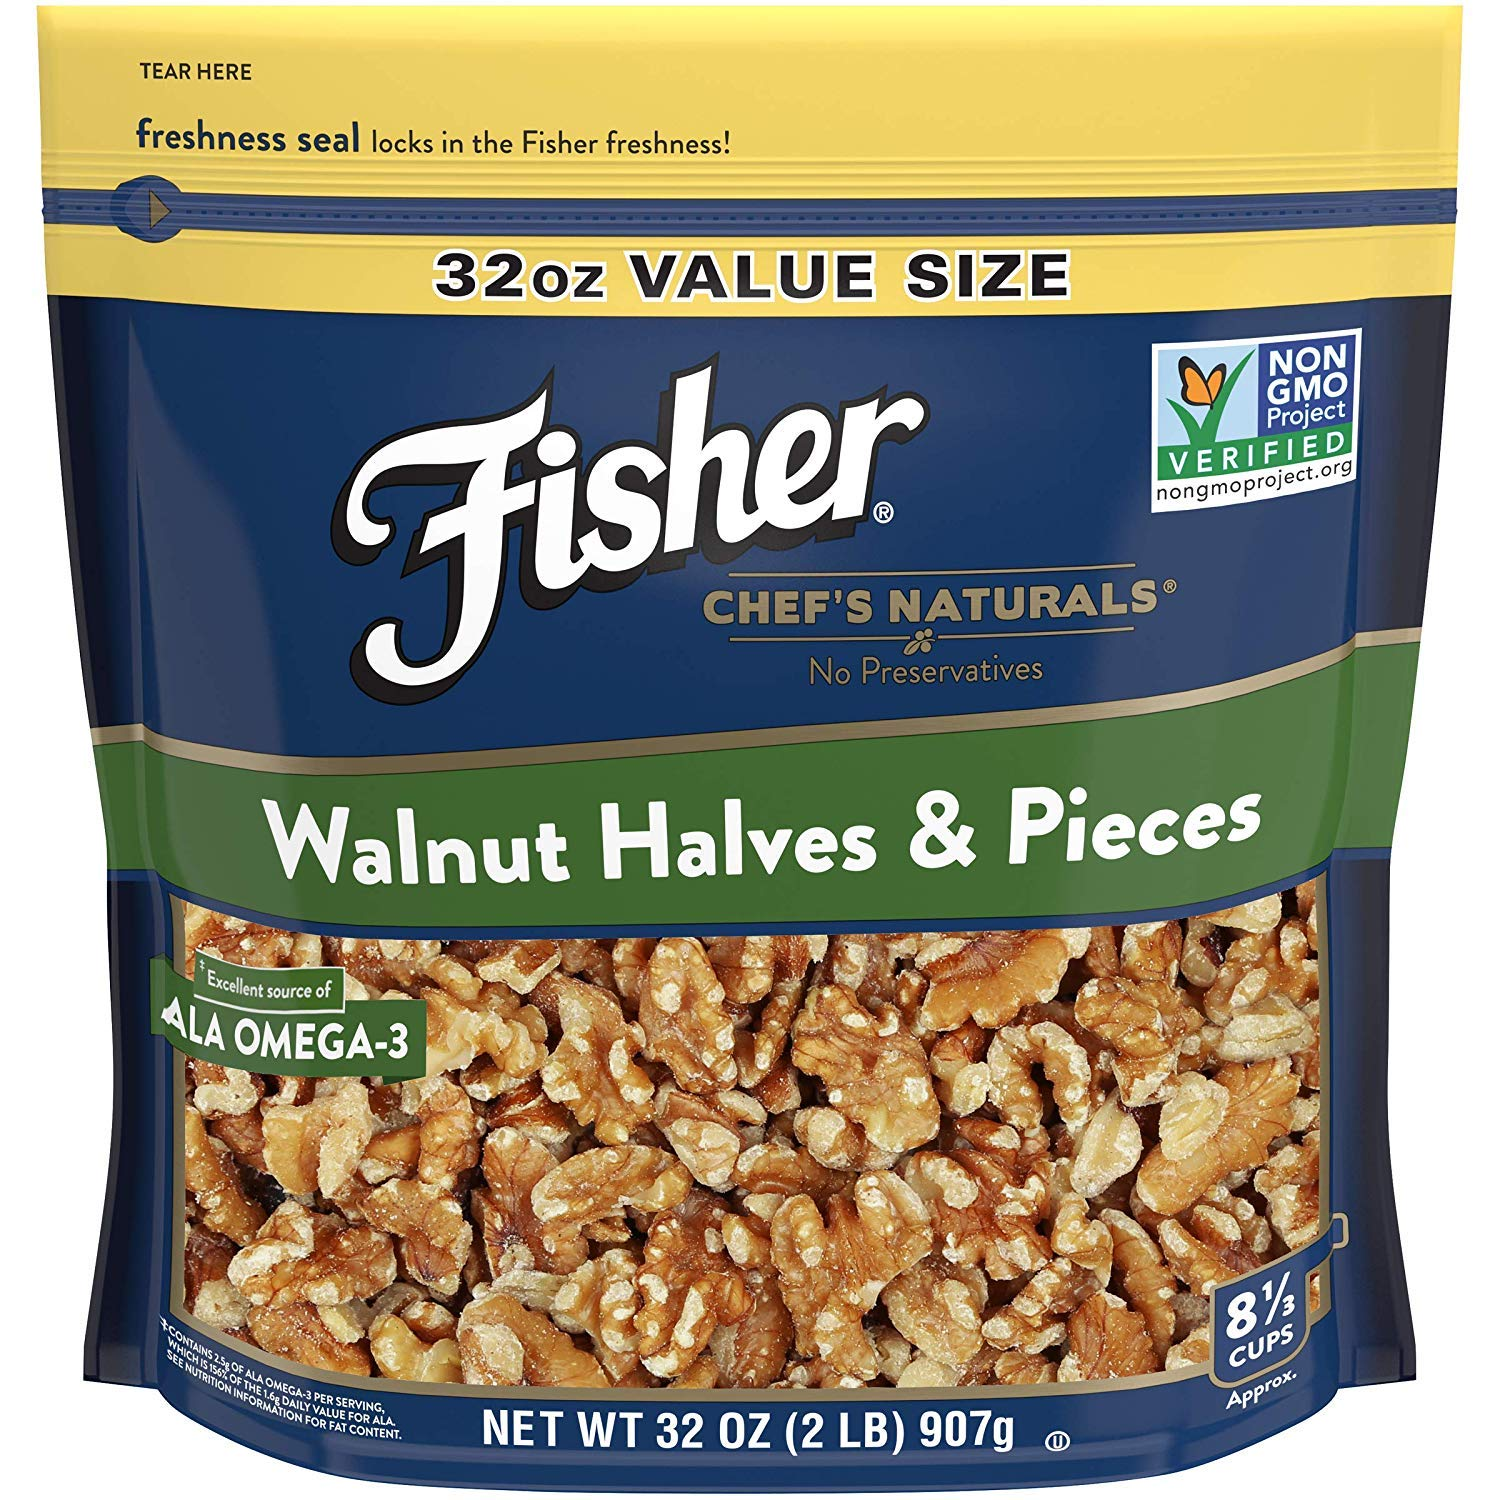 FISHER Chef's Naturals Walnut Halves & Pieces, 32 oz, Naturally Gluten Free, No Preservatives, Non-GMO